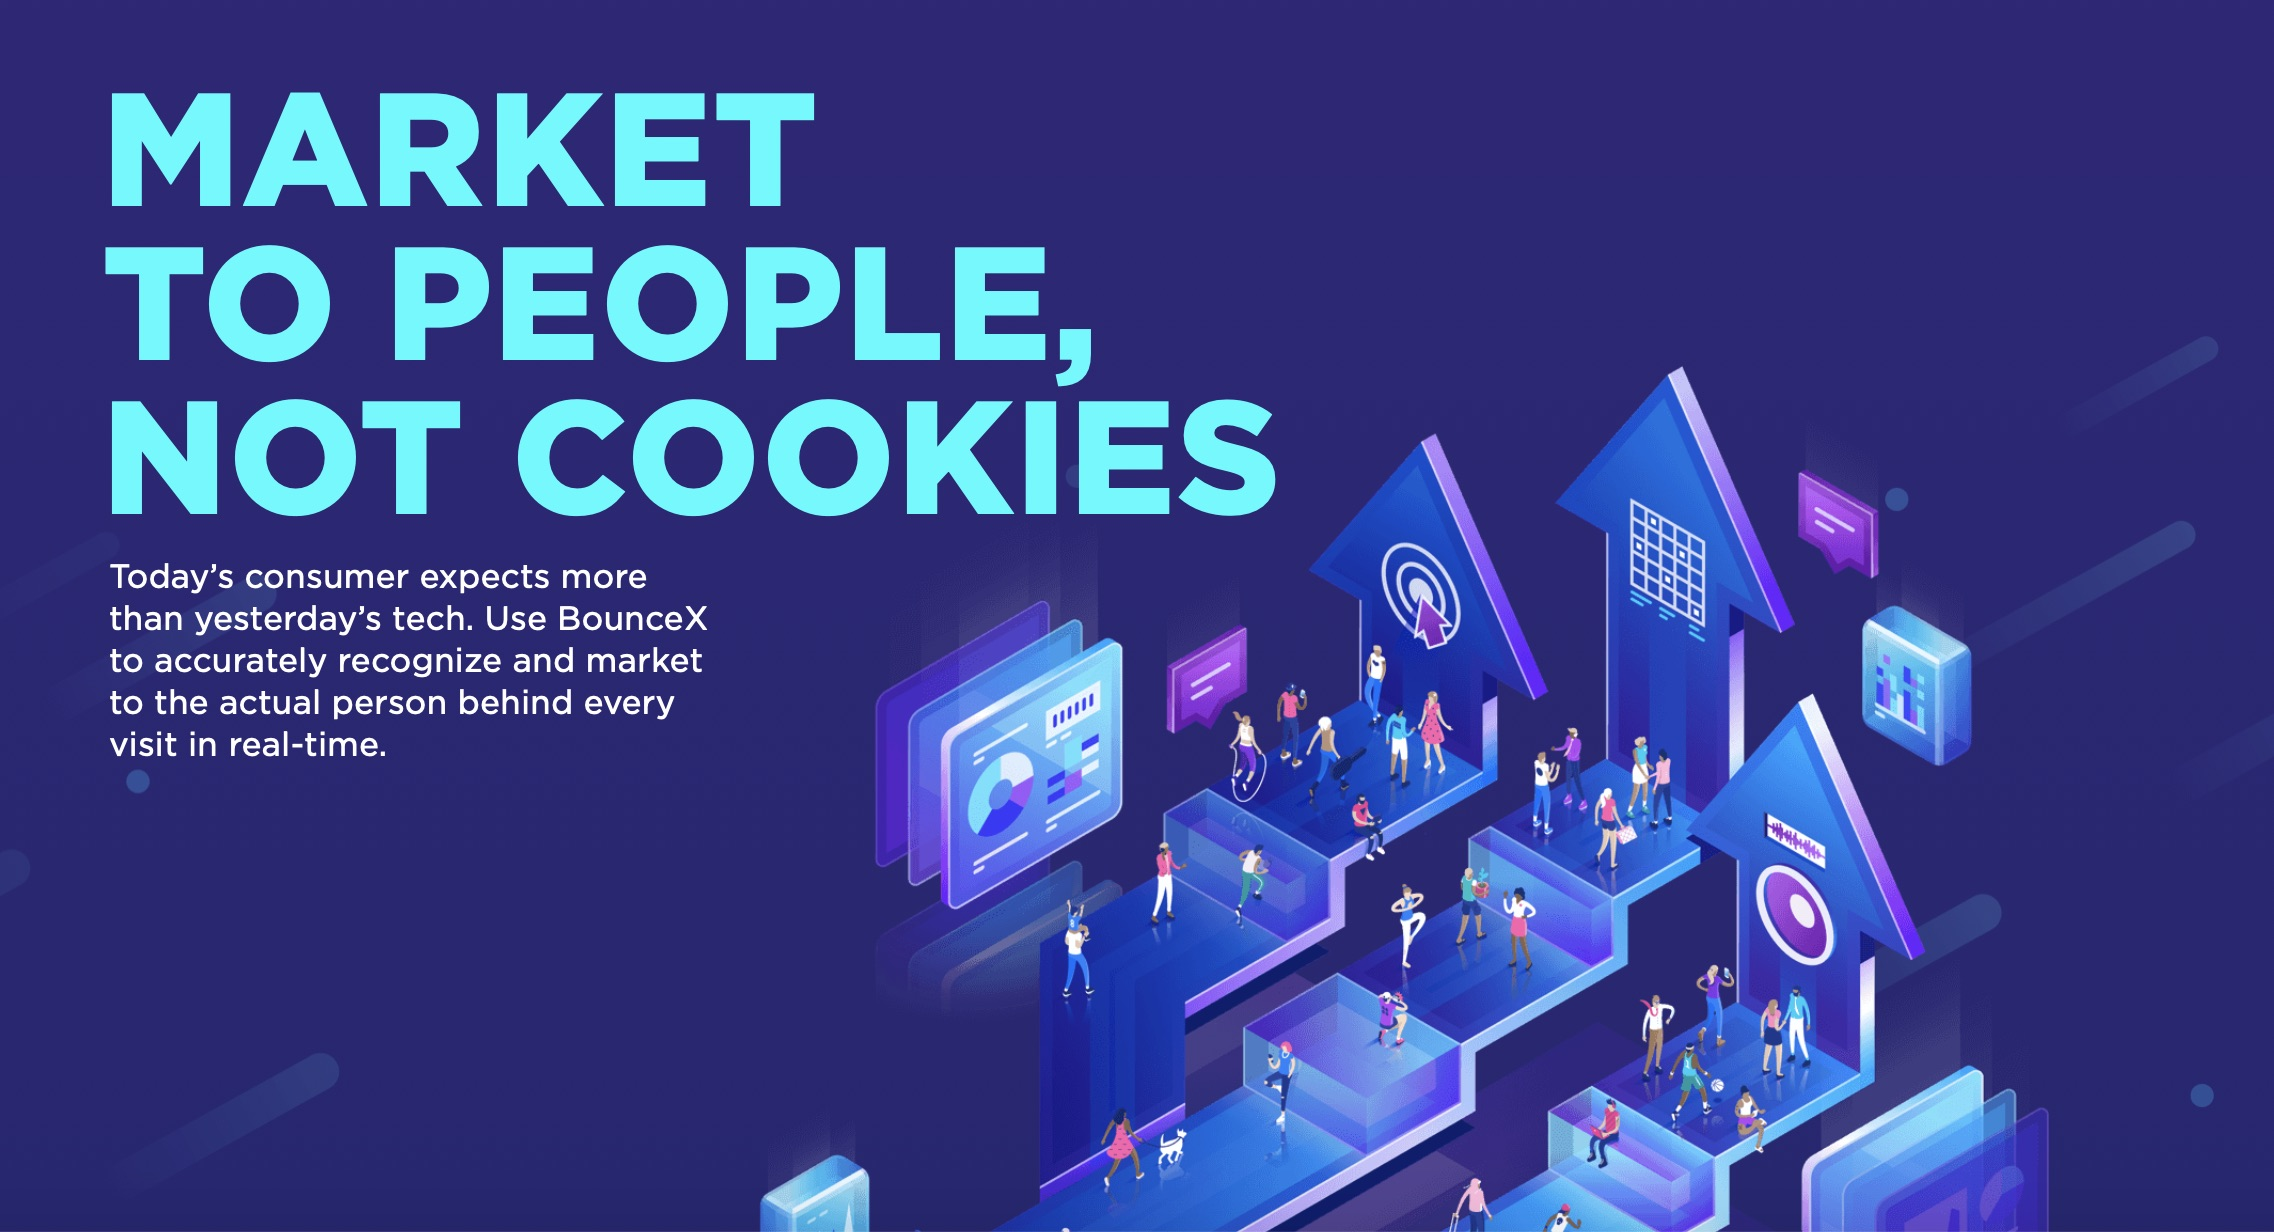 Market to people, not cookies. Today's consumer expects more than yesterday's tech. Use BounceX to accurately recognize and market to the actual person behind every visit in real-time.